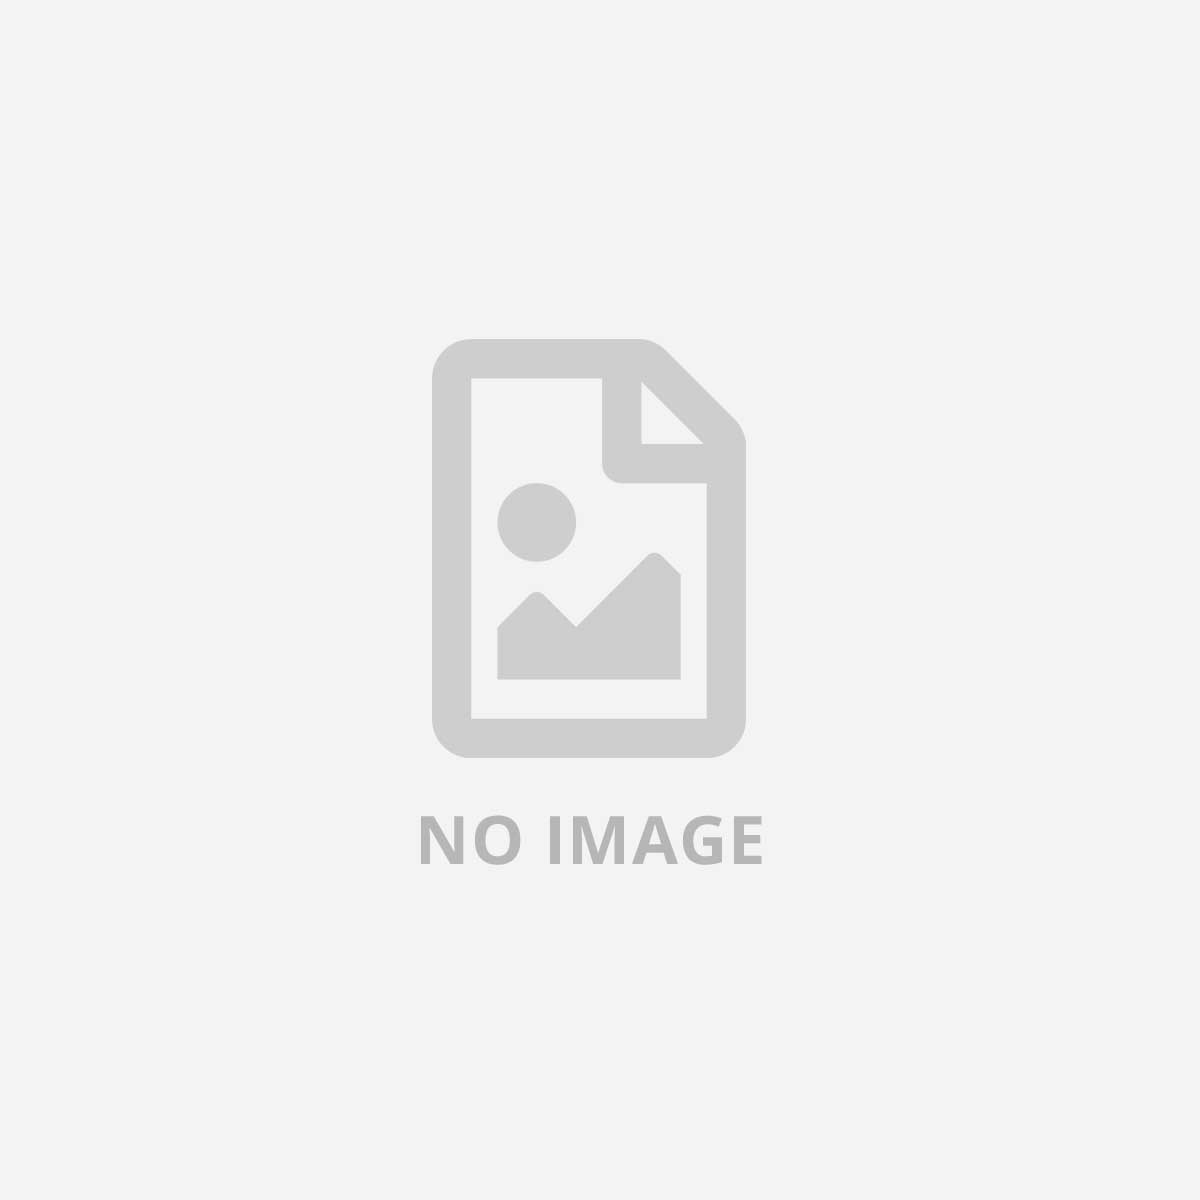 ASUS PG27VQ/CURVED GAMING/HDMI